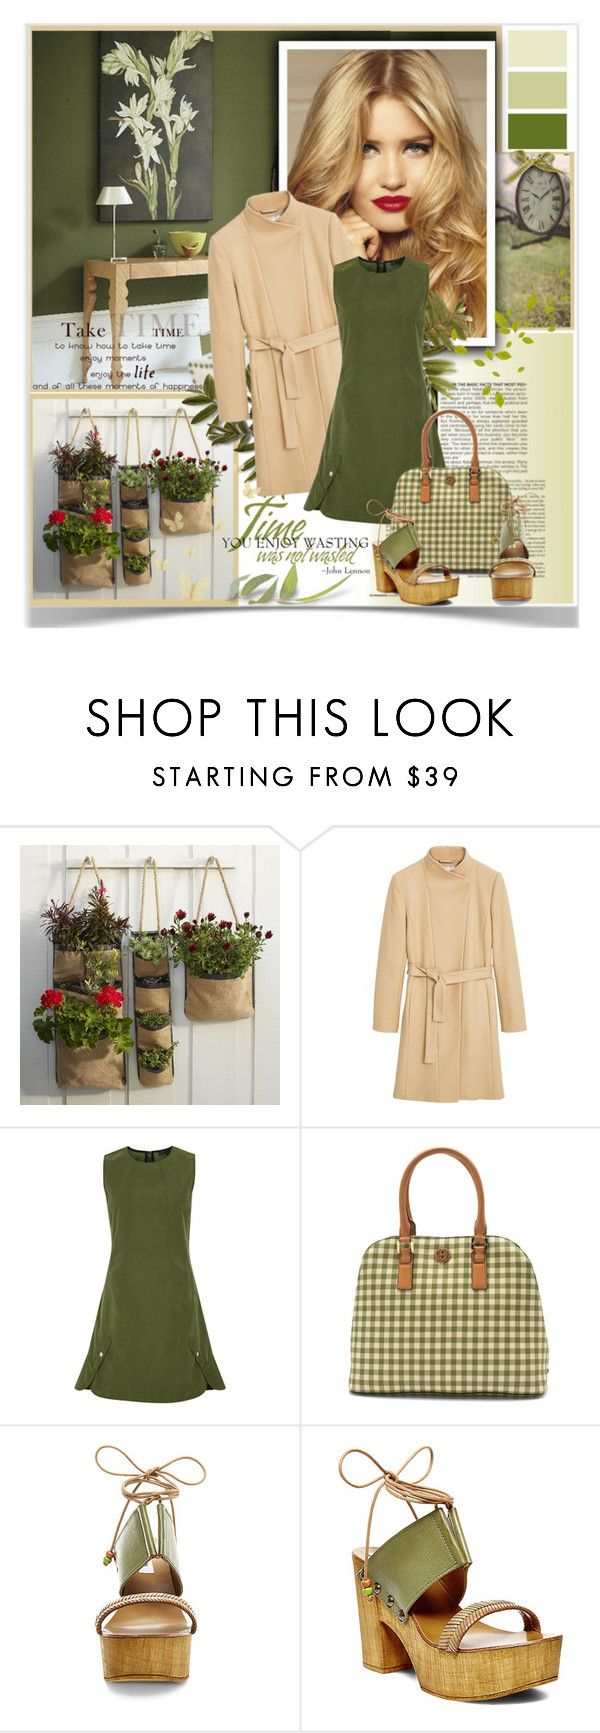 """Take time to enjoy your life!"" by sweetdee55 ❤ liked on Polyvore featuring West Elm, MANGO, Alexander Wang, Tory Burch and Steve Madden"